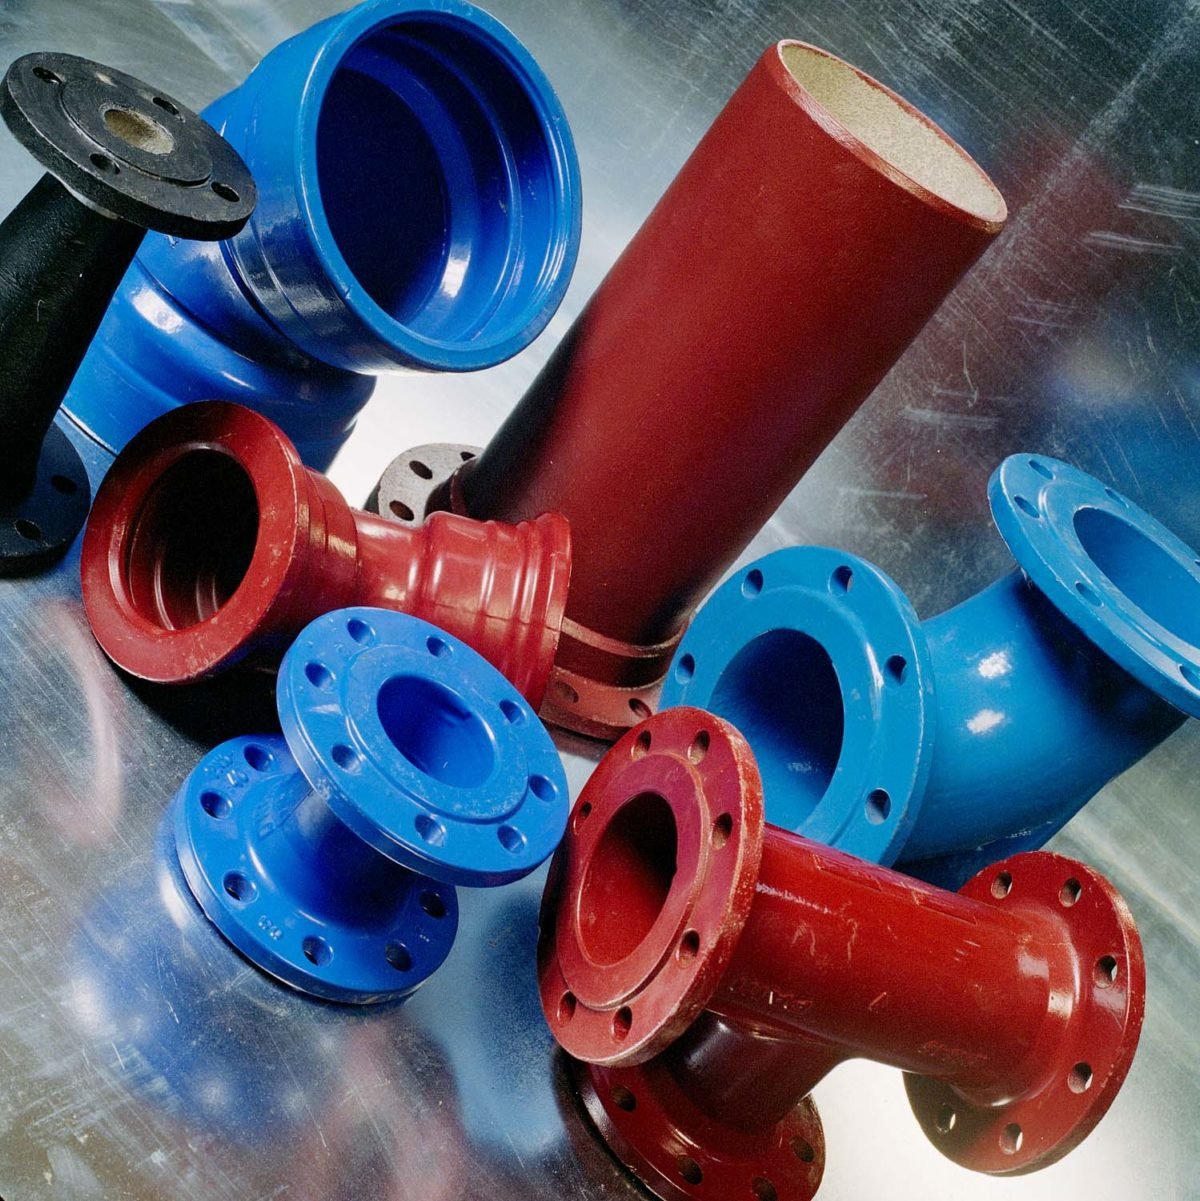 Ductile Iron Pipes play a major role in our lives u2013 this is simply owing to the fact that these pipes are used in potable water transmission. & Rashmi Group: Pioneer in Ductile Iron Pipes Manufacture - Ground Report